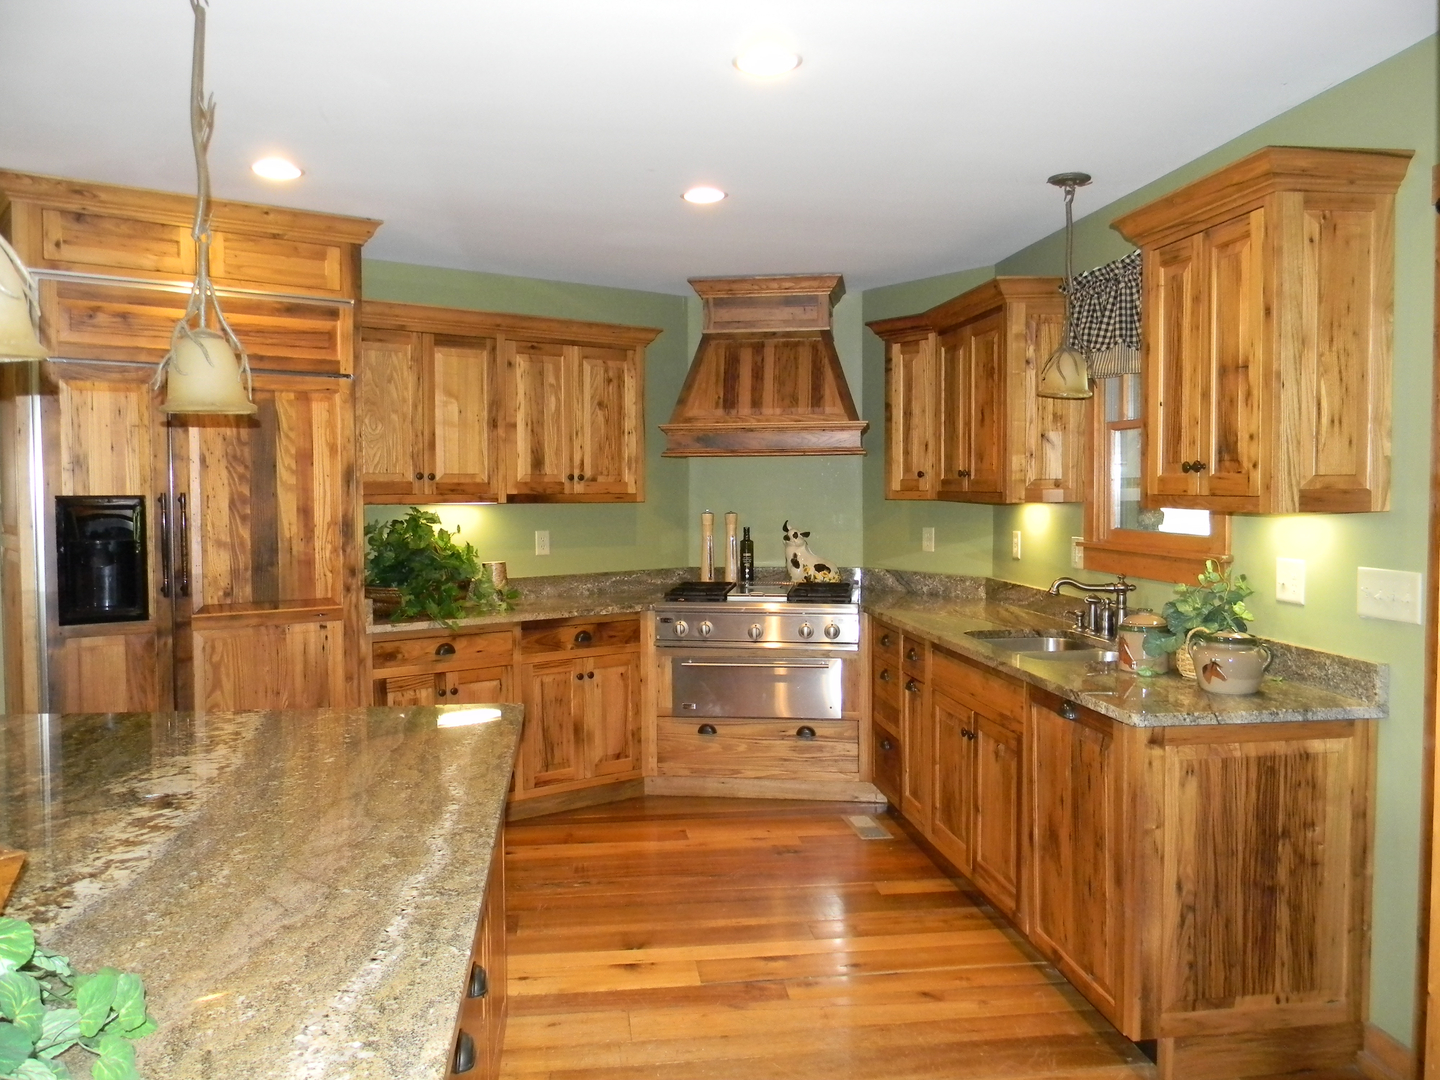 Family Owned And Operated Since 1975 Formerly Known As The Woodshed Joel Steele S Custom Cabinets